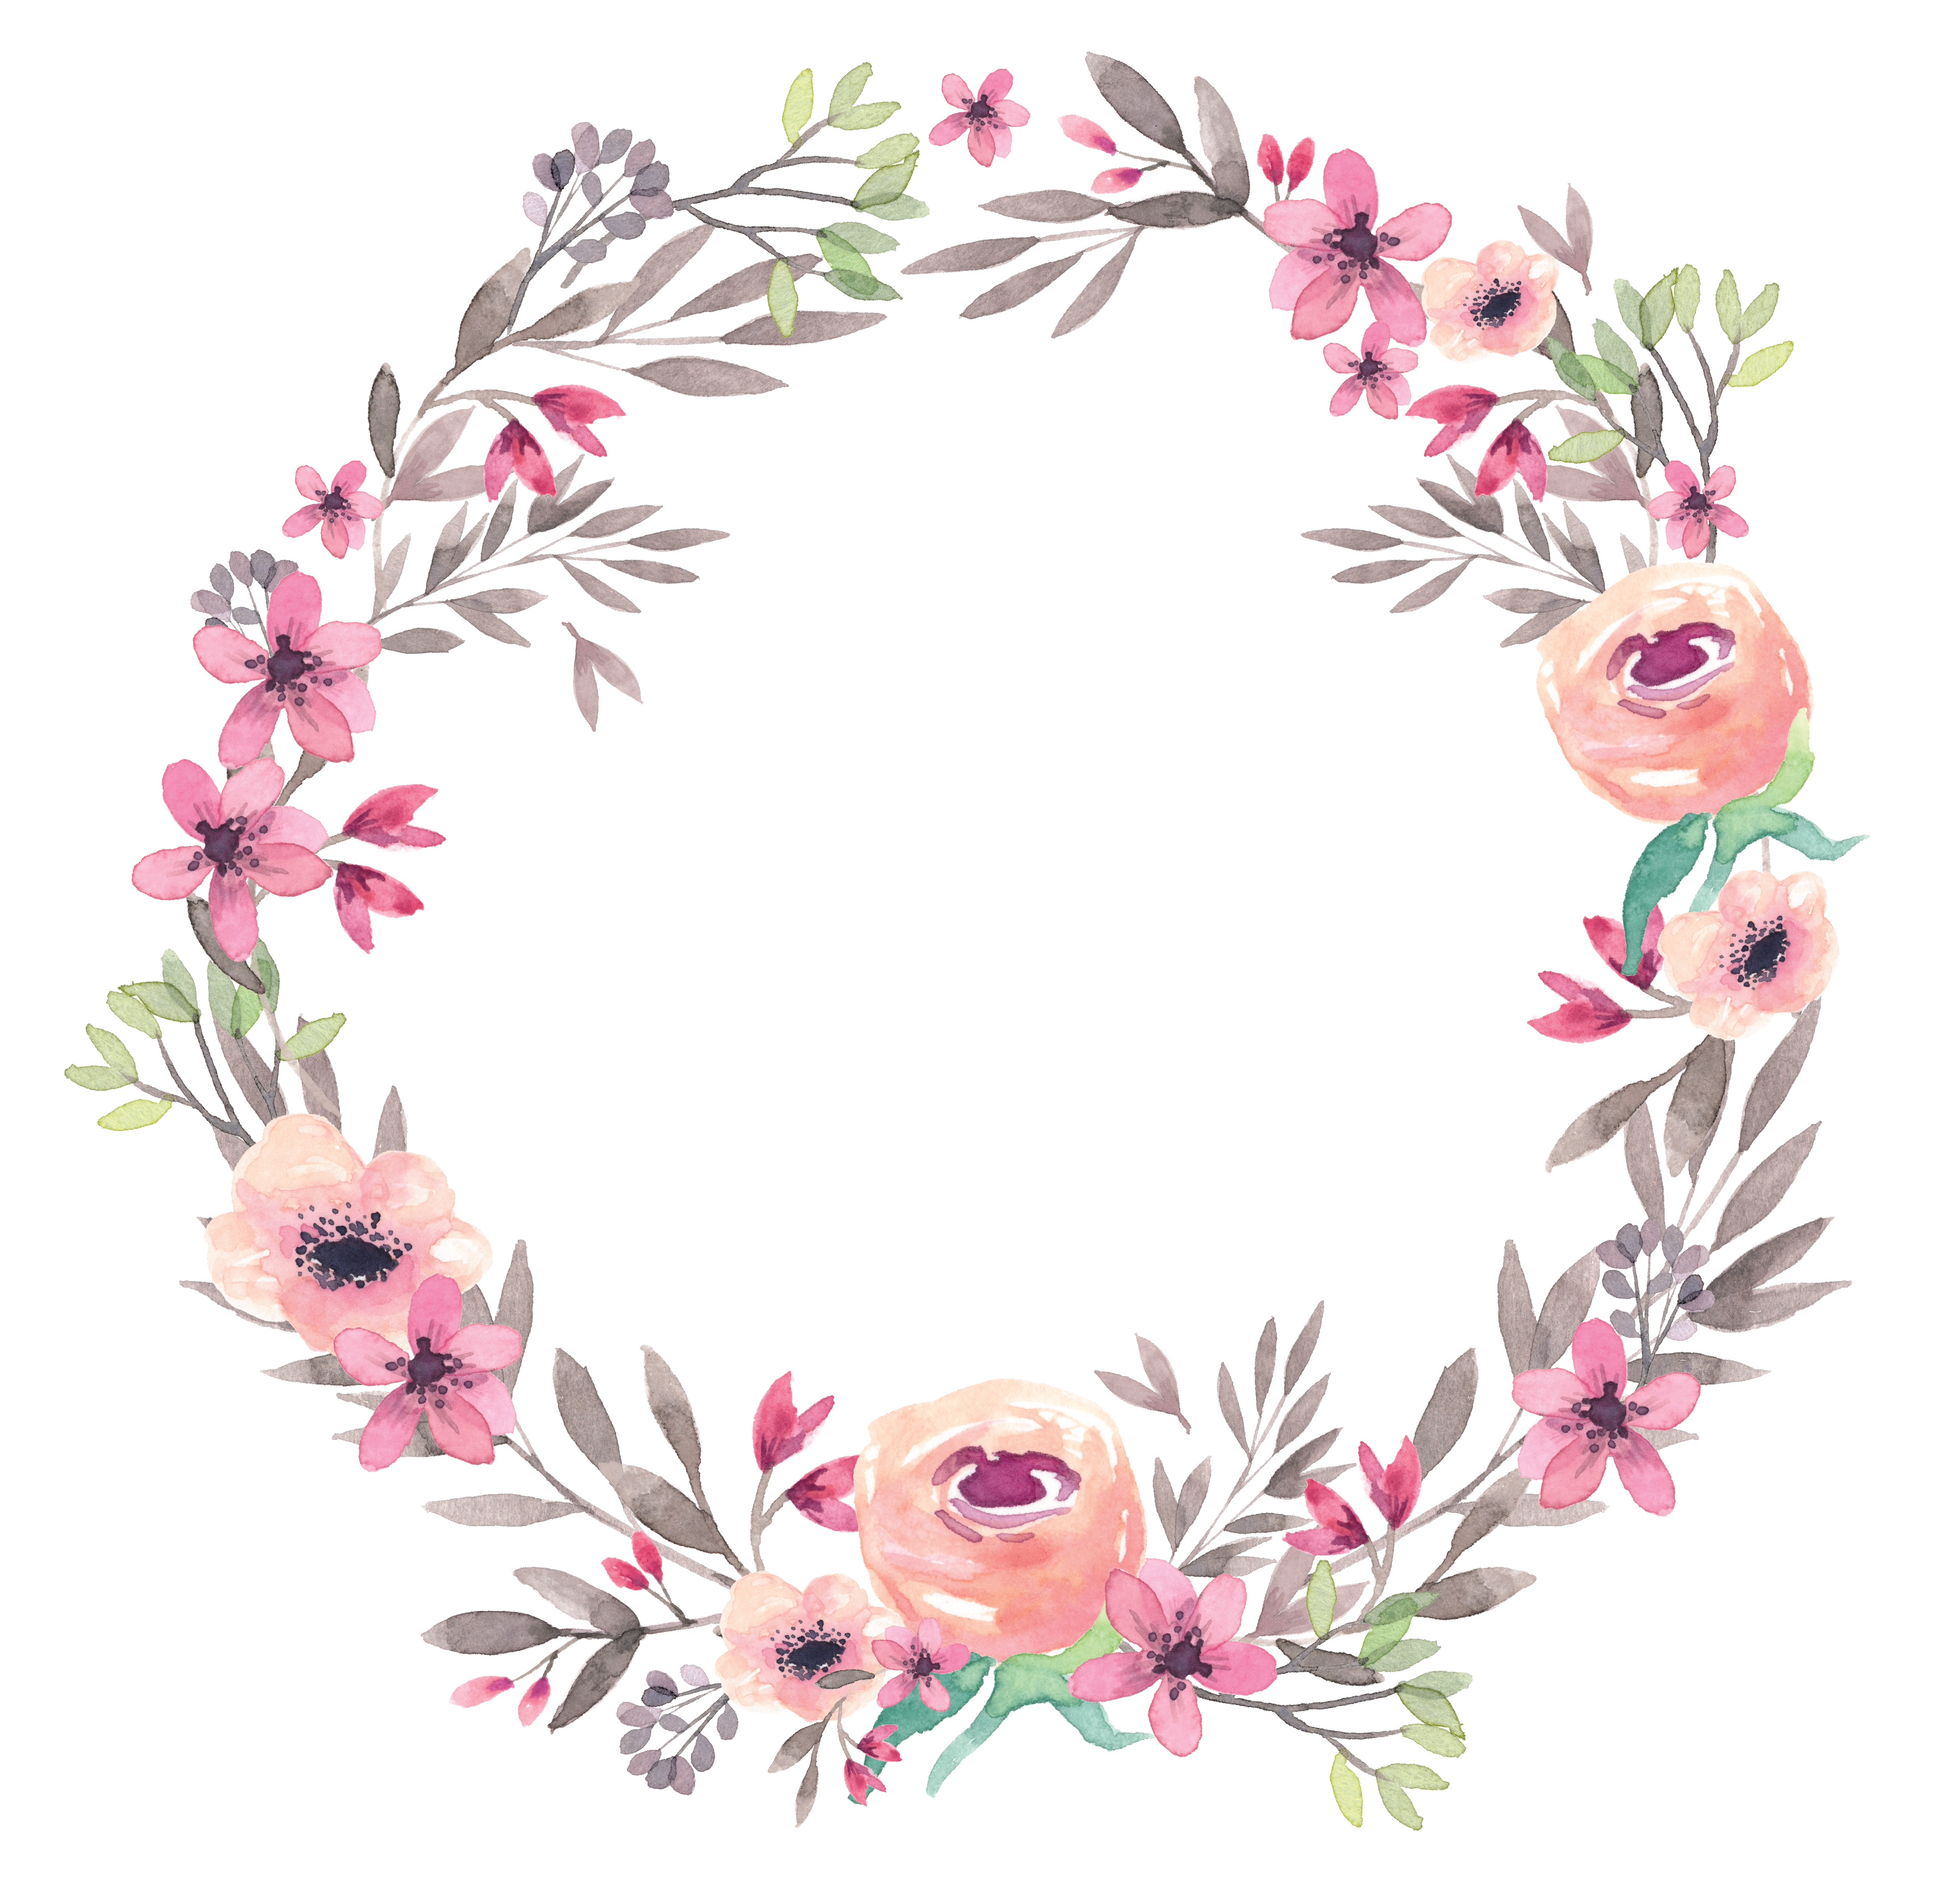 Flores organizador pinterest corinthian. Watercolor wreath flower png banner freeuse library